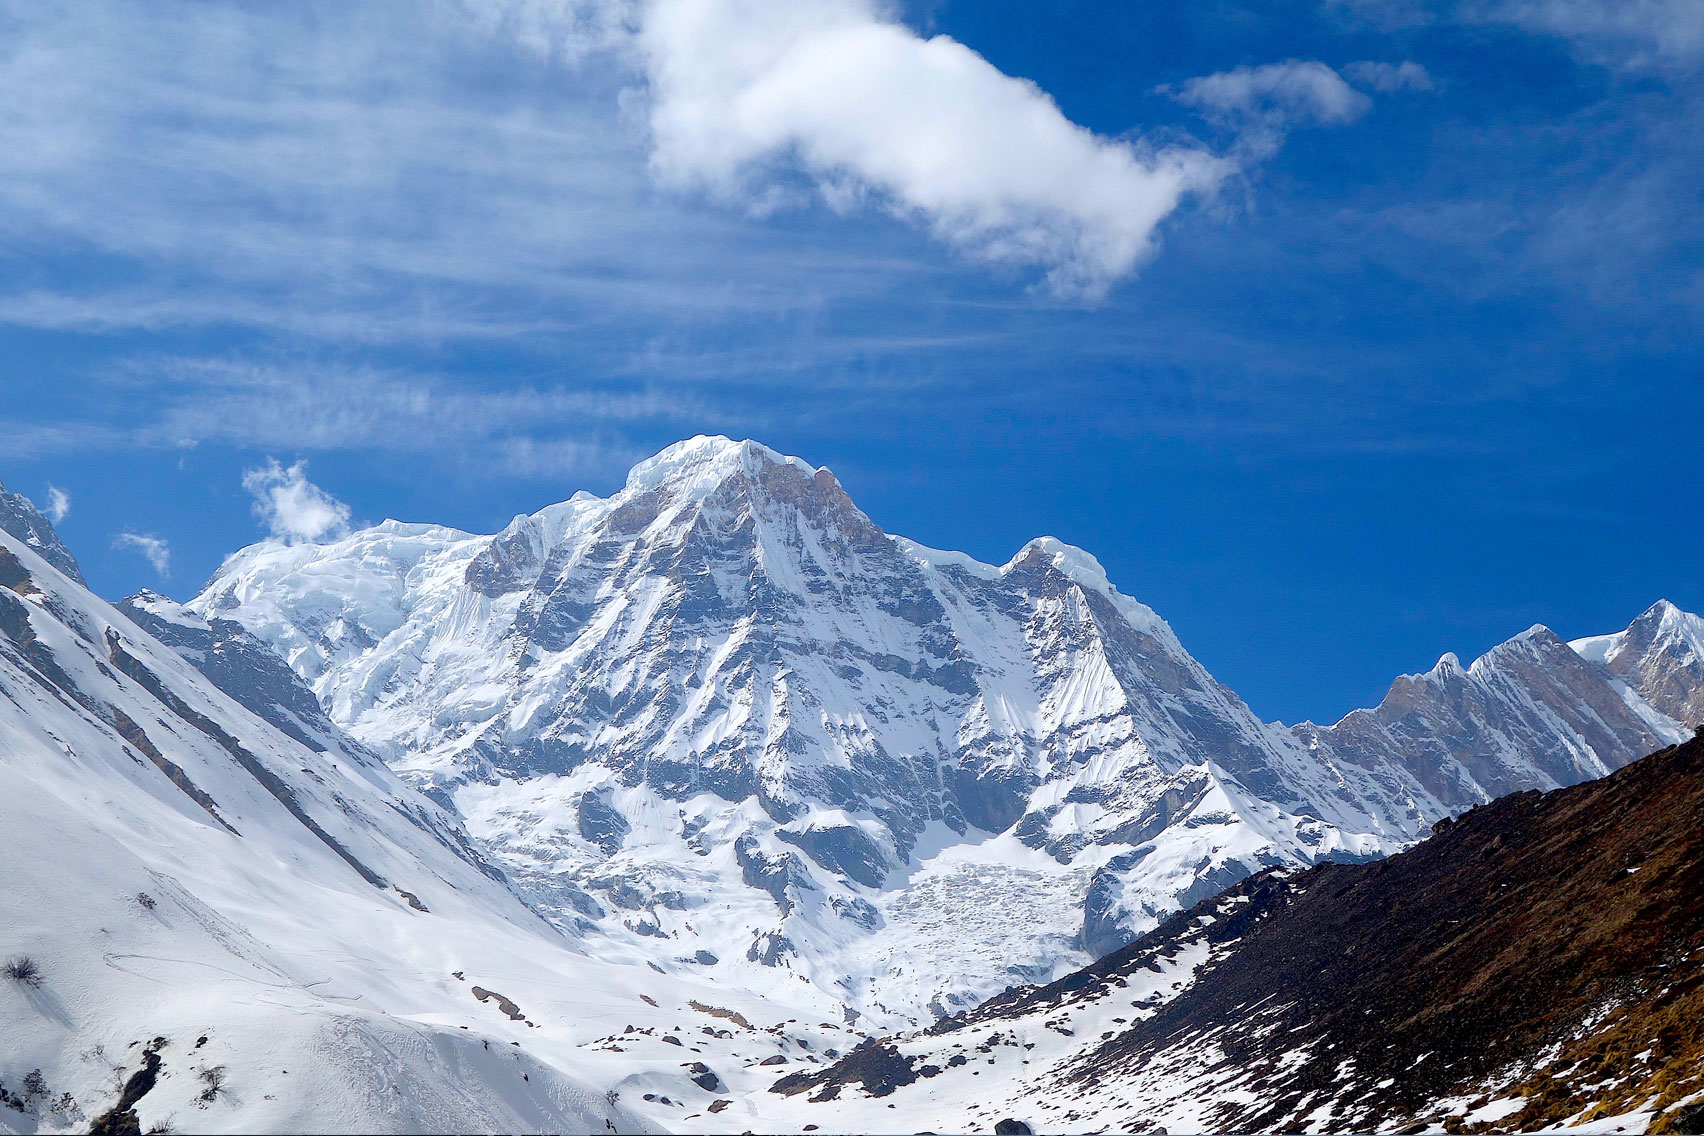 Day 9: Trek from MBC (3700m) to Annapurna Base Camp (2hrs, 4130m)